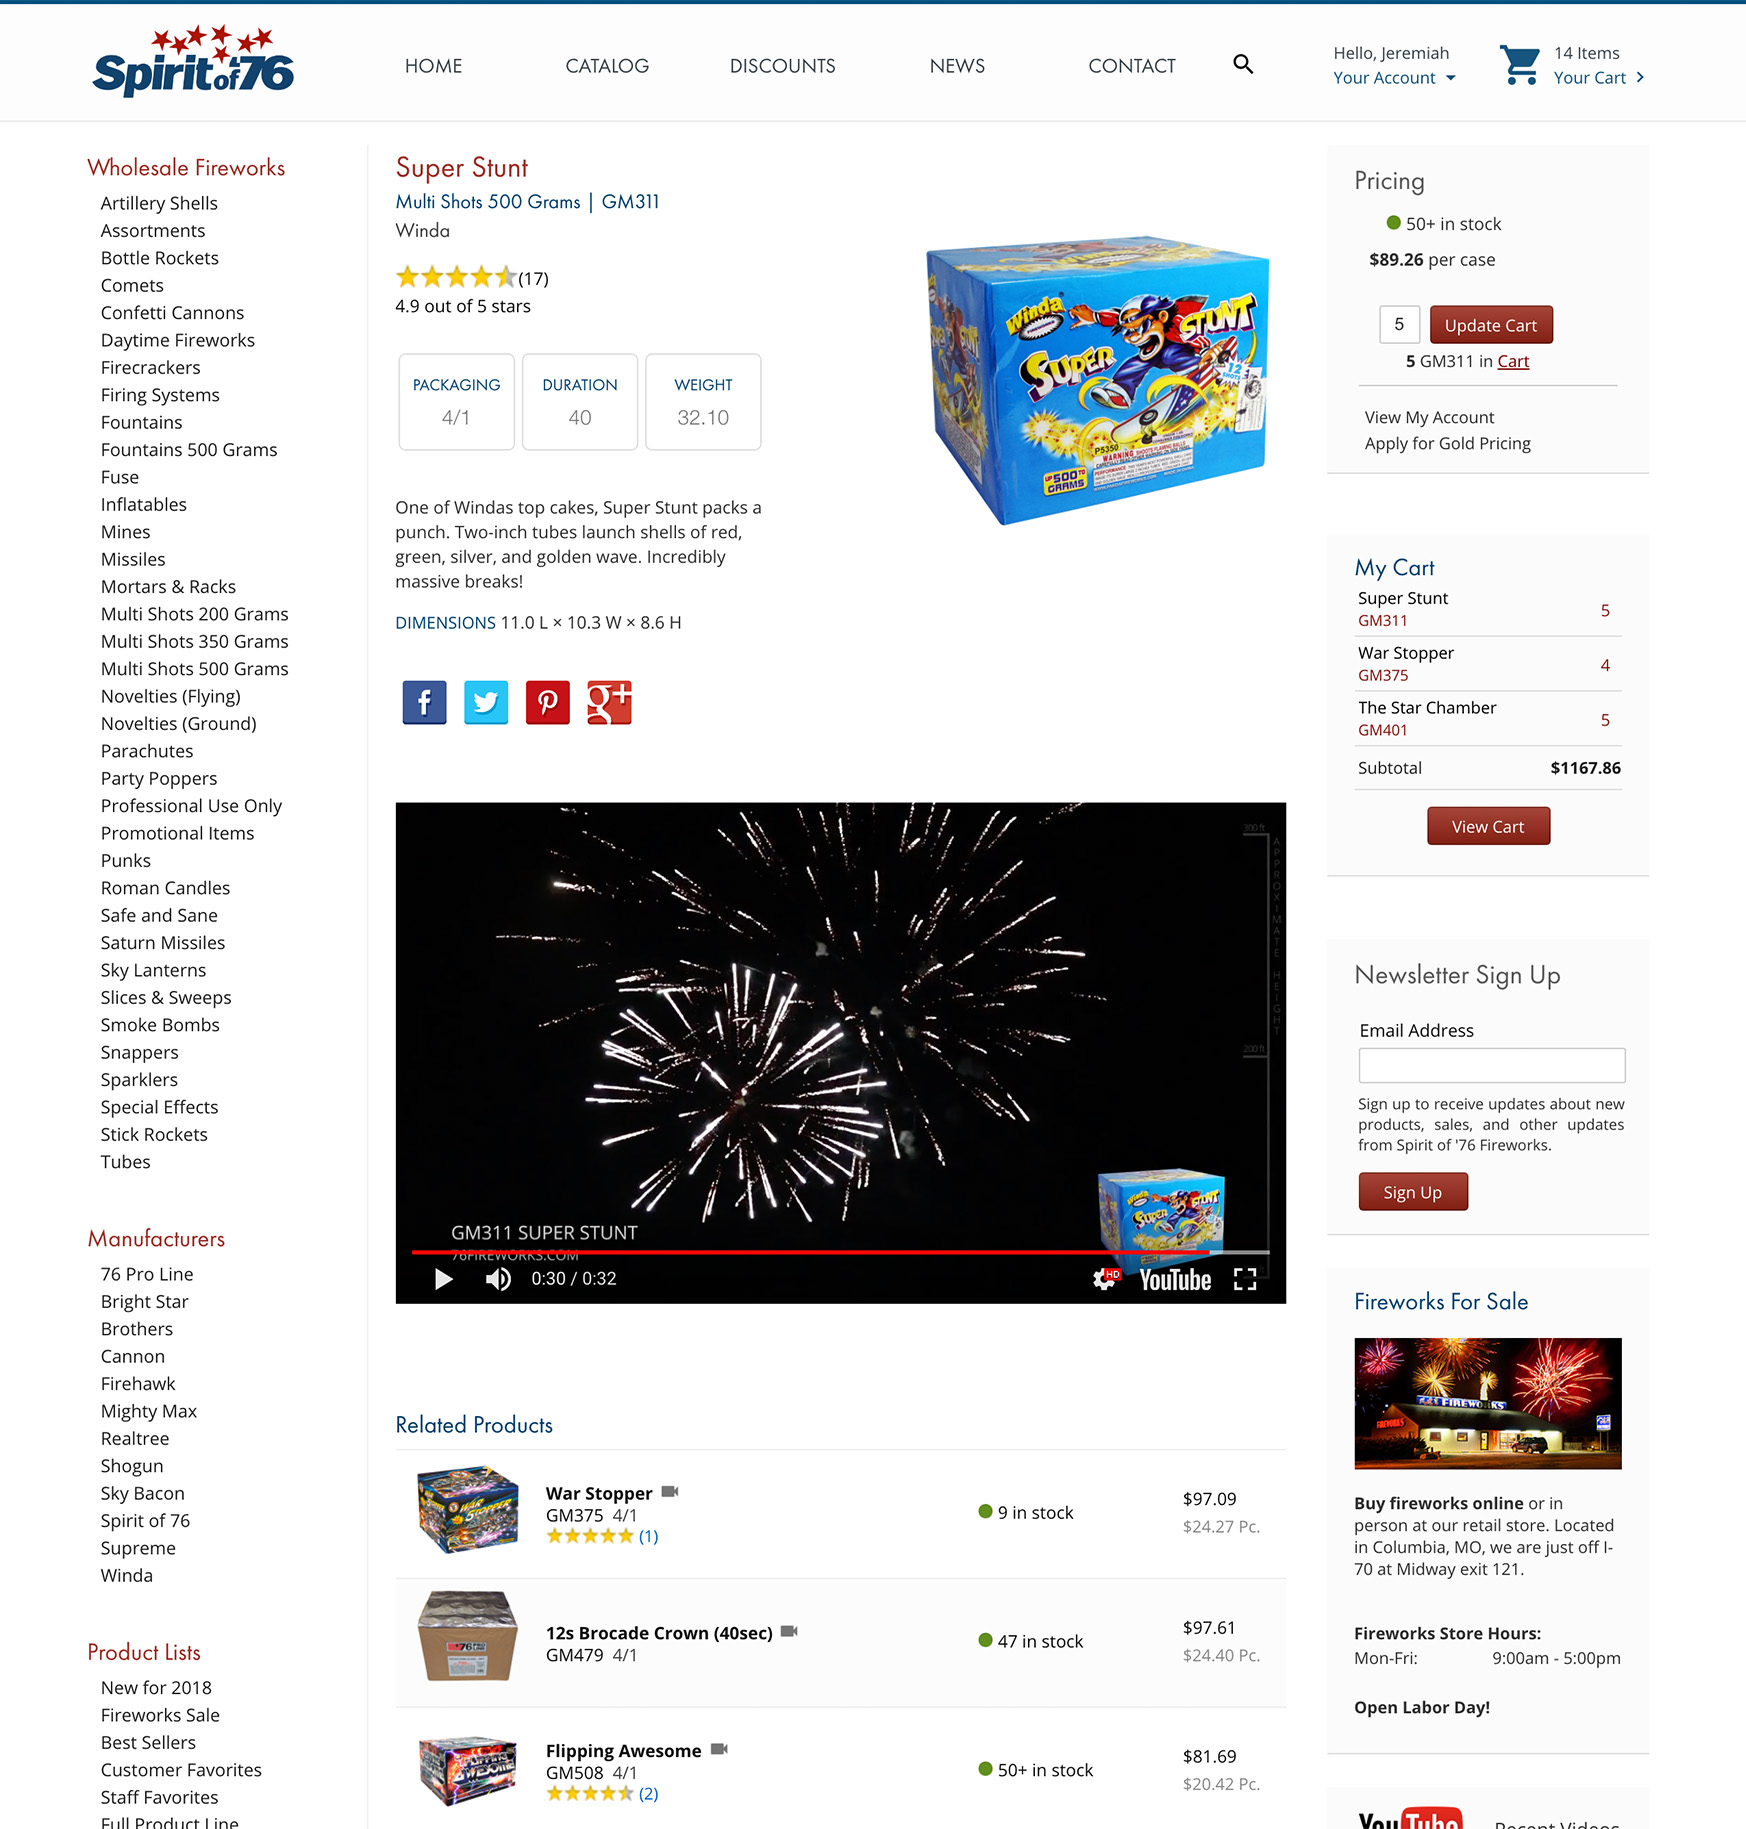 Spirit of 76 Fireworks Website